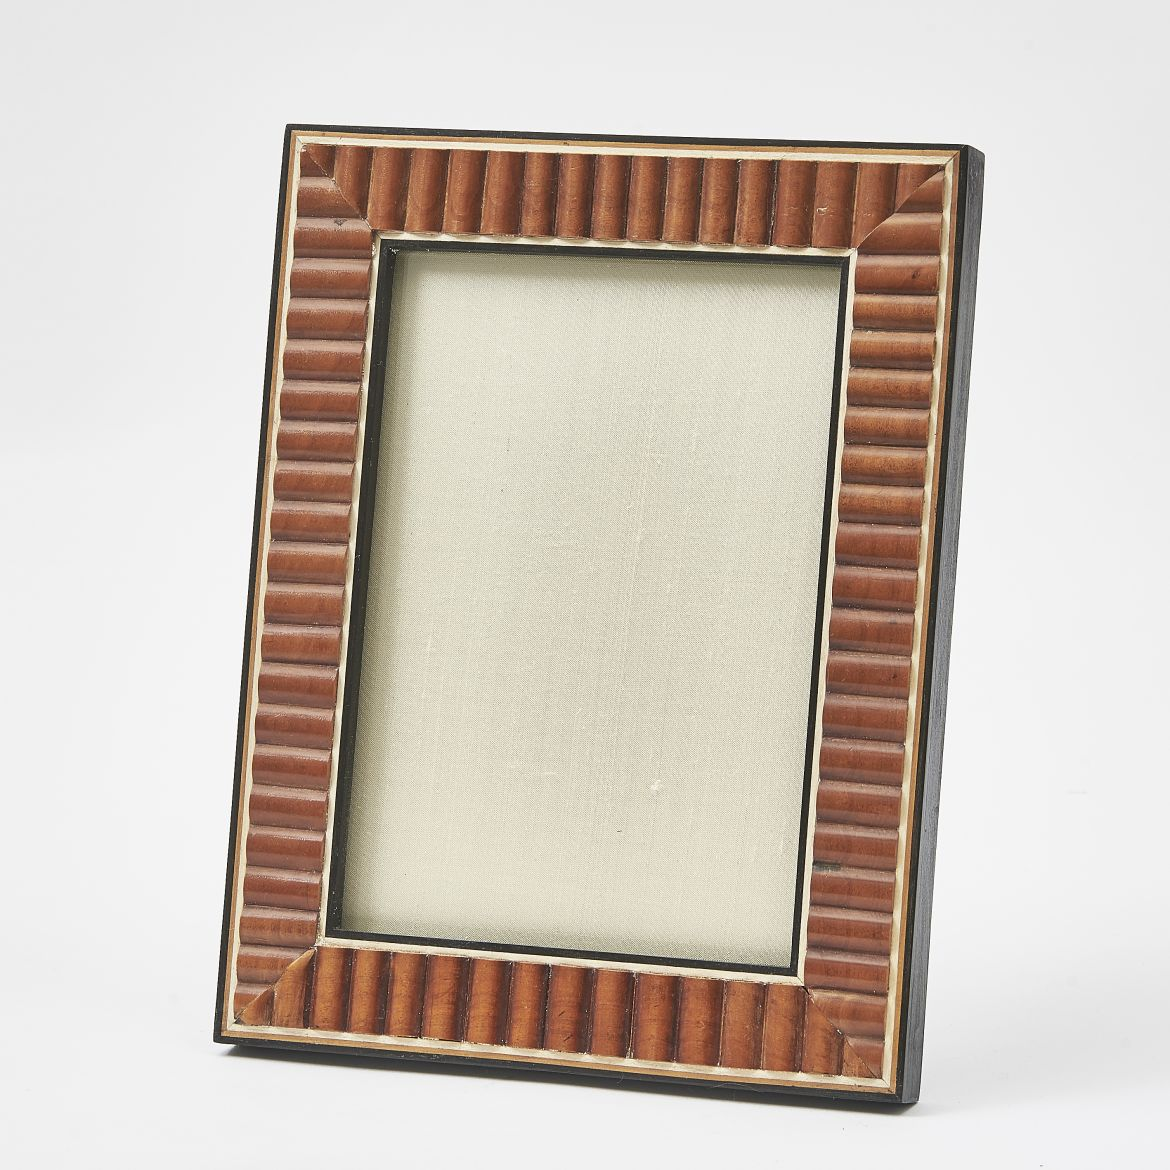 Antique Elements Palmwood Frame